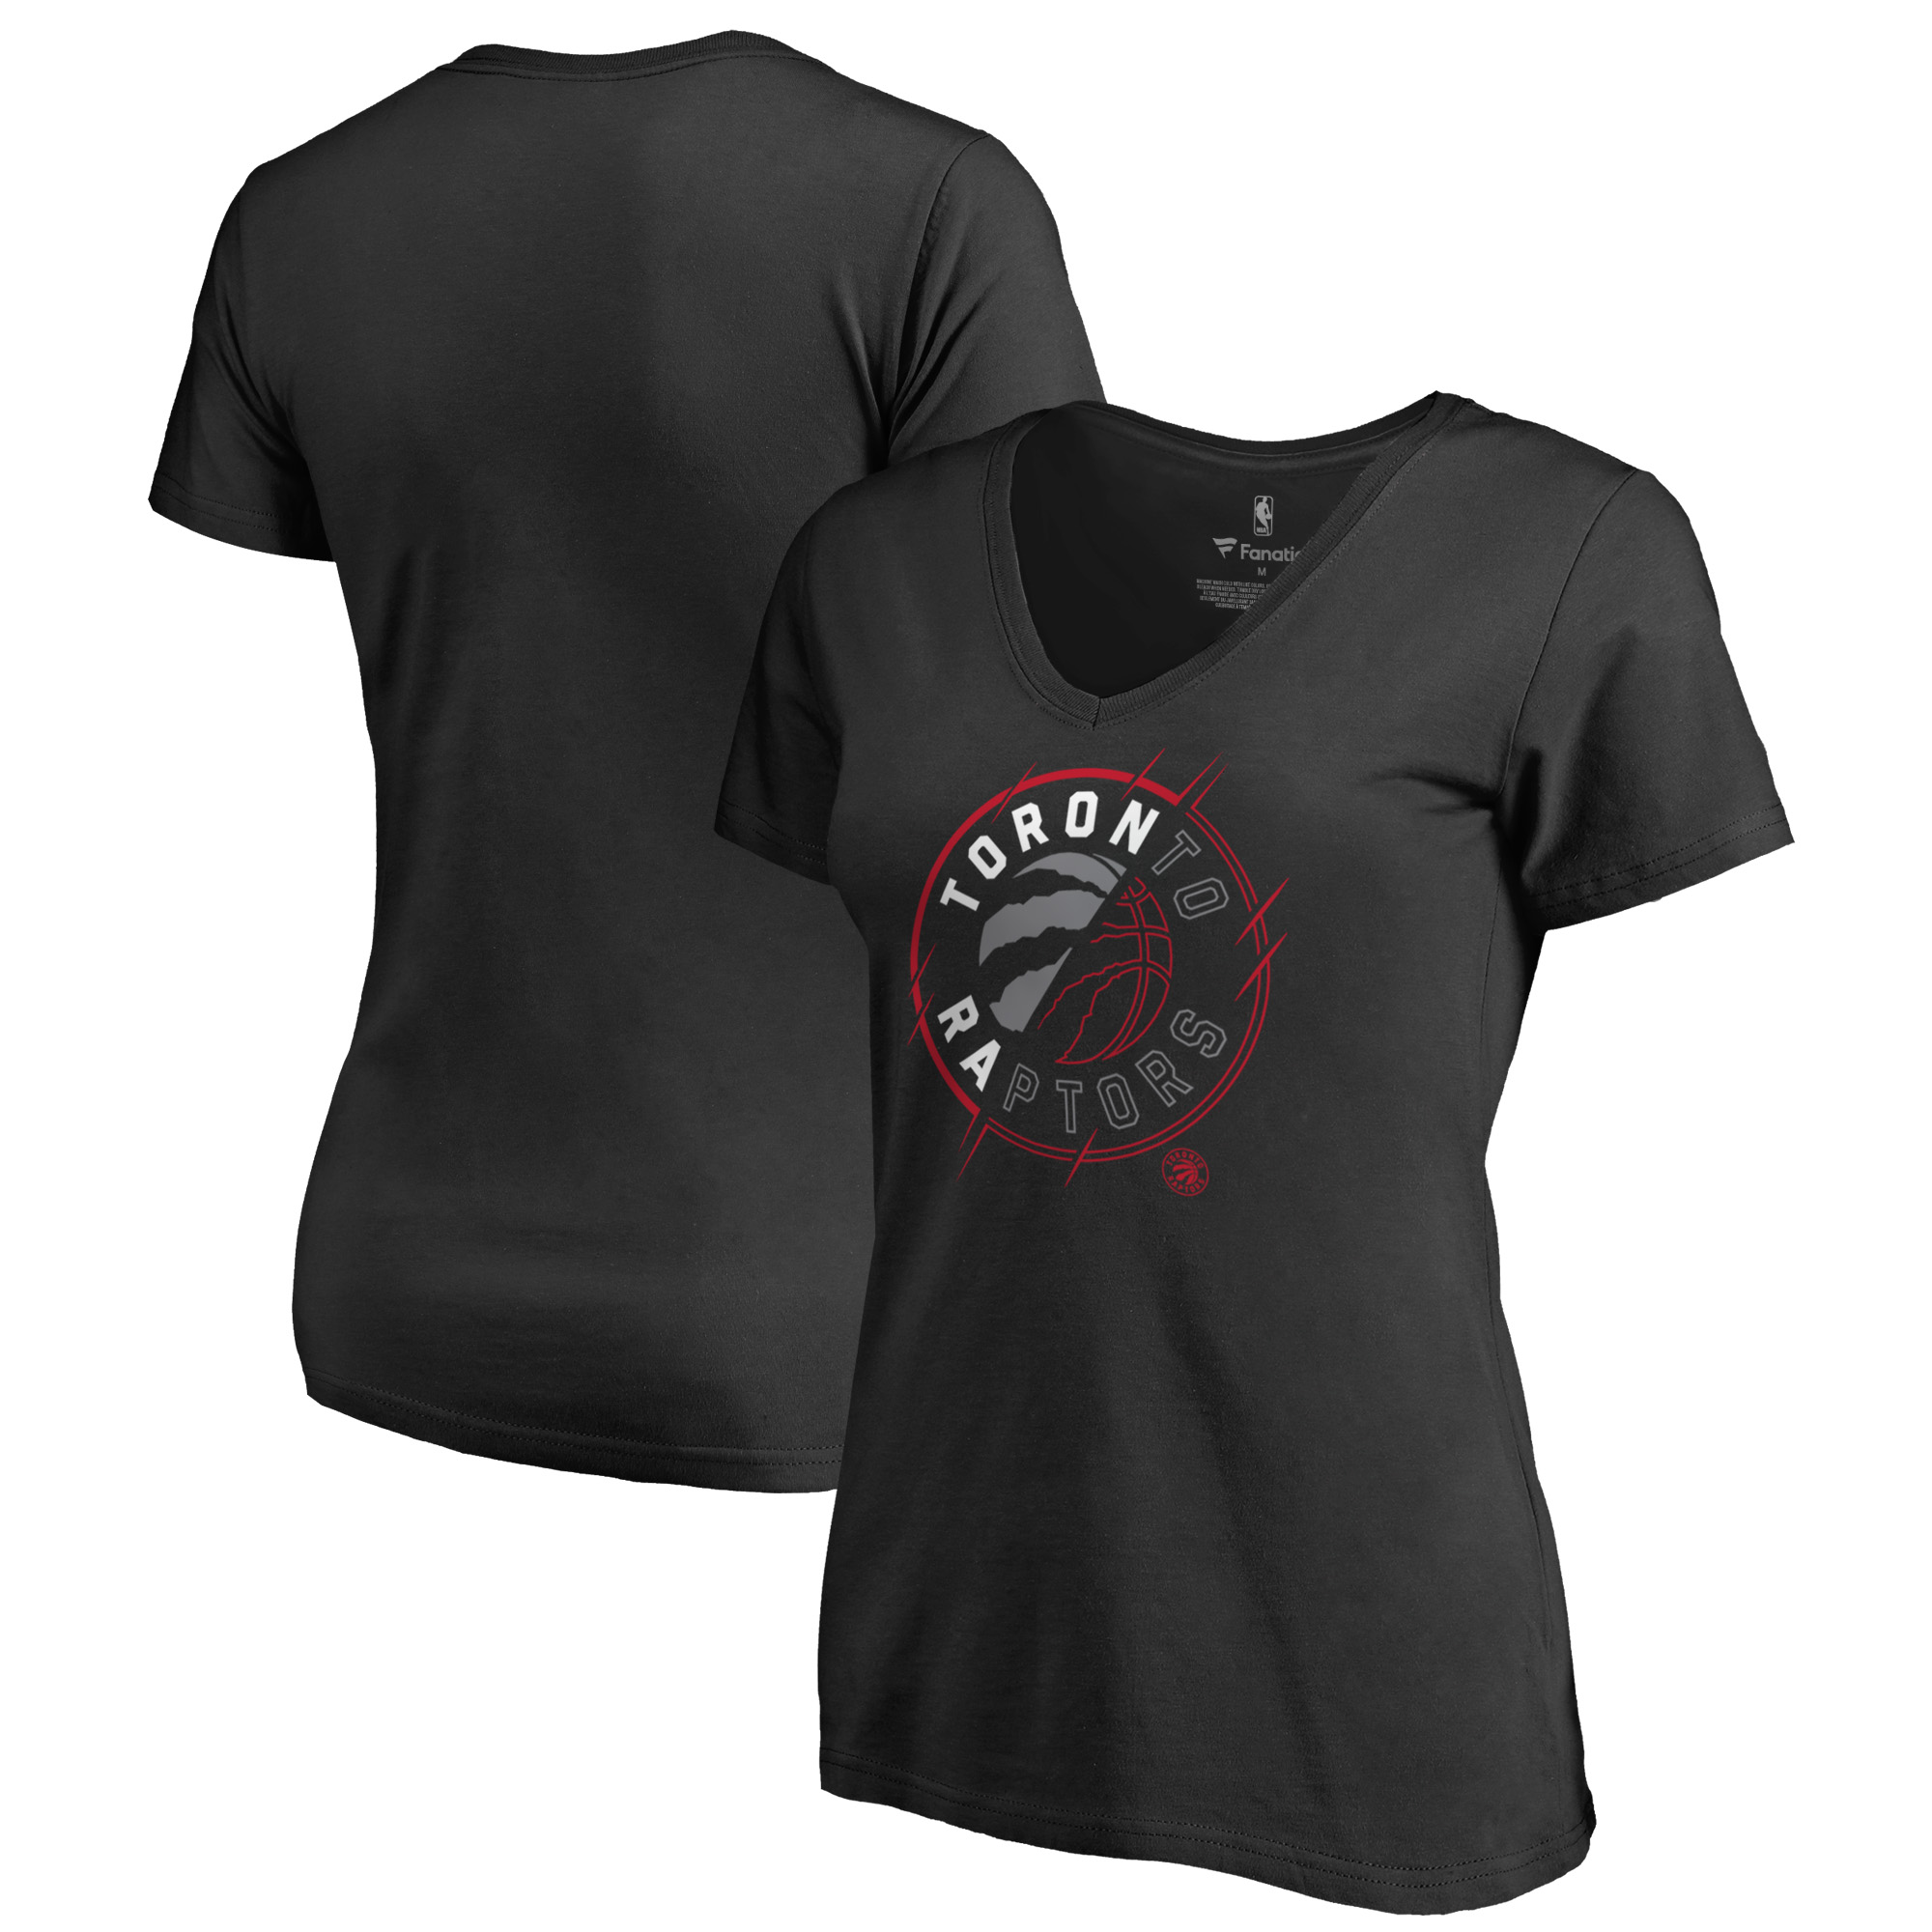 Toronto Raptors Fanatics Branded Women's X-Ray Slim Fit V-Neck T-Shirt - Black